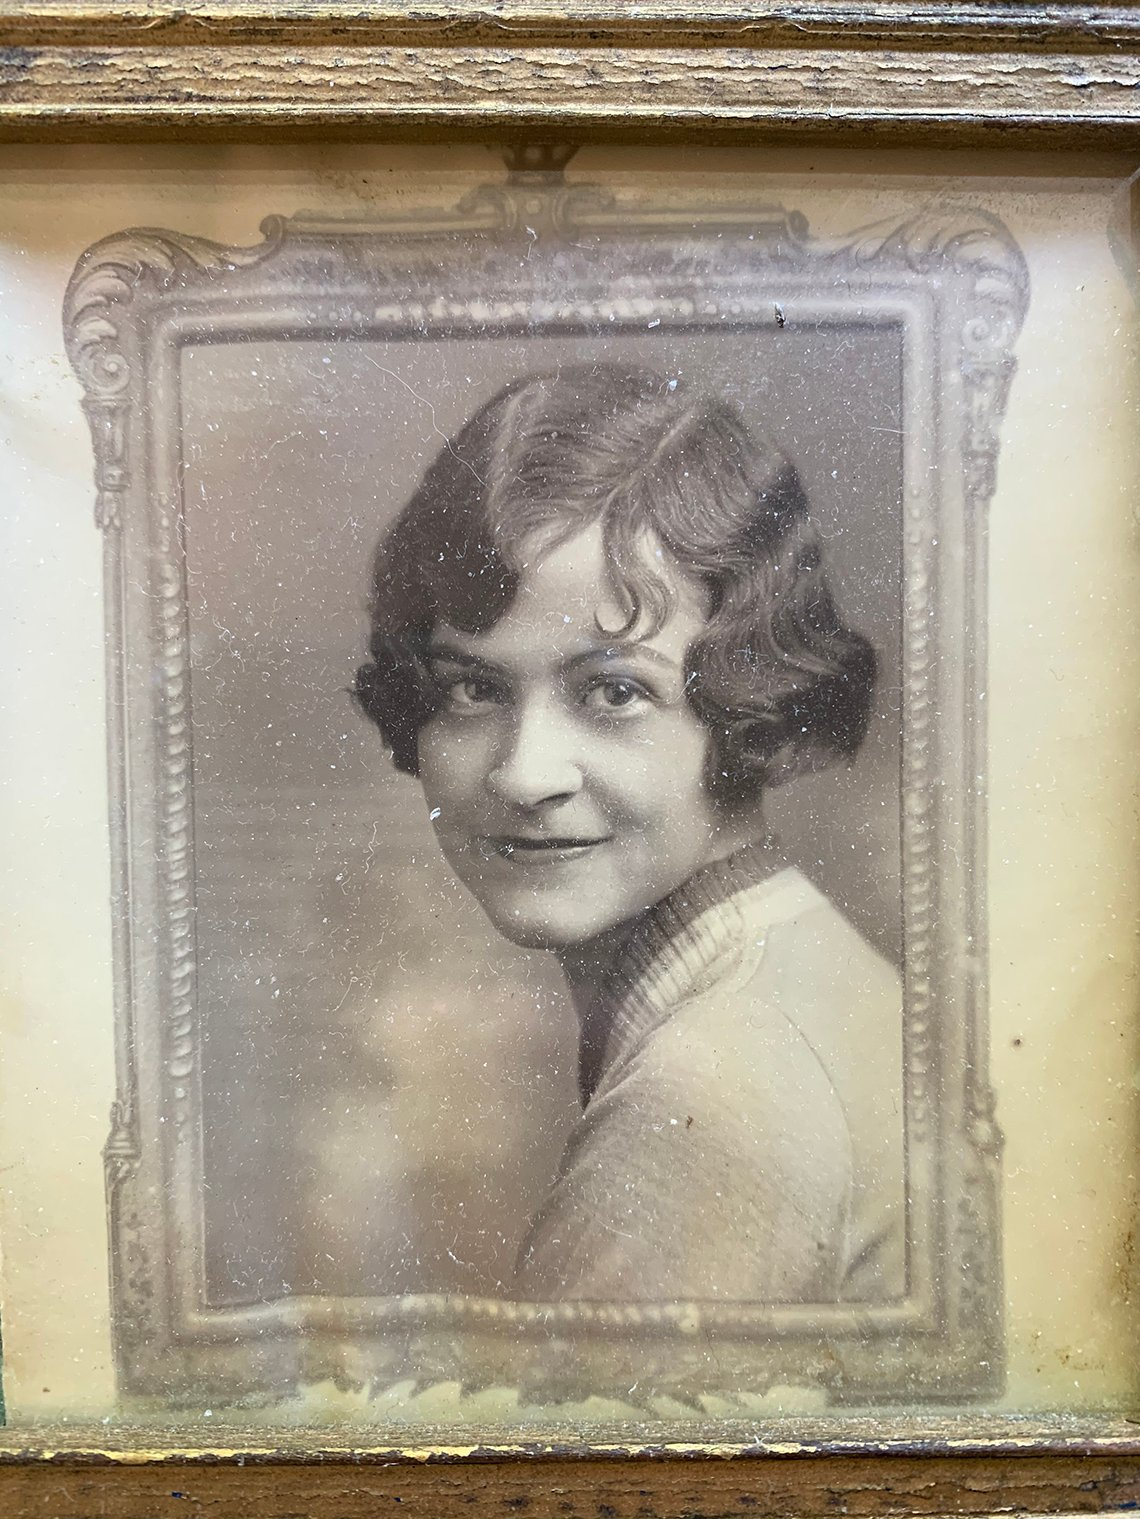 black and white photo of thelma sutcliffe as a young woman